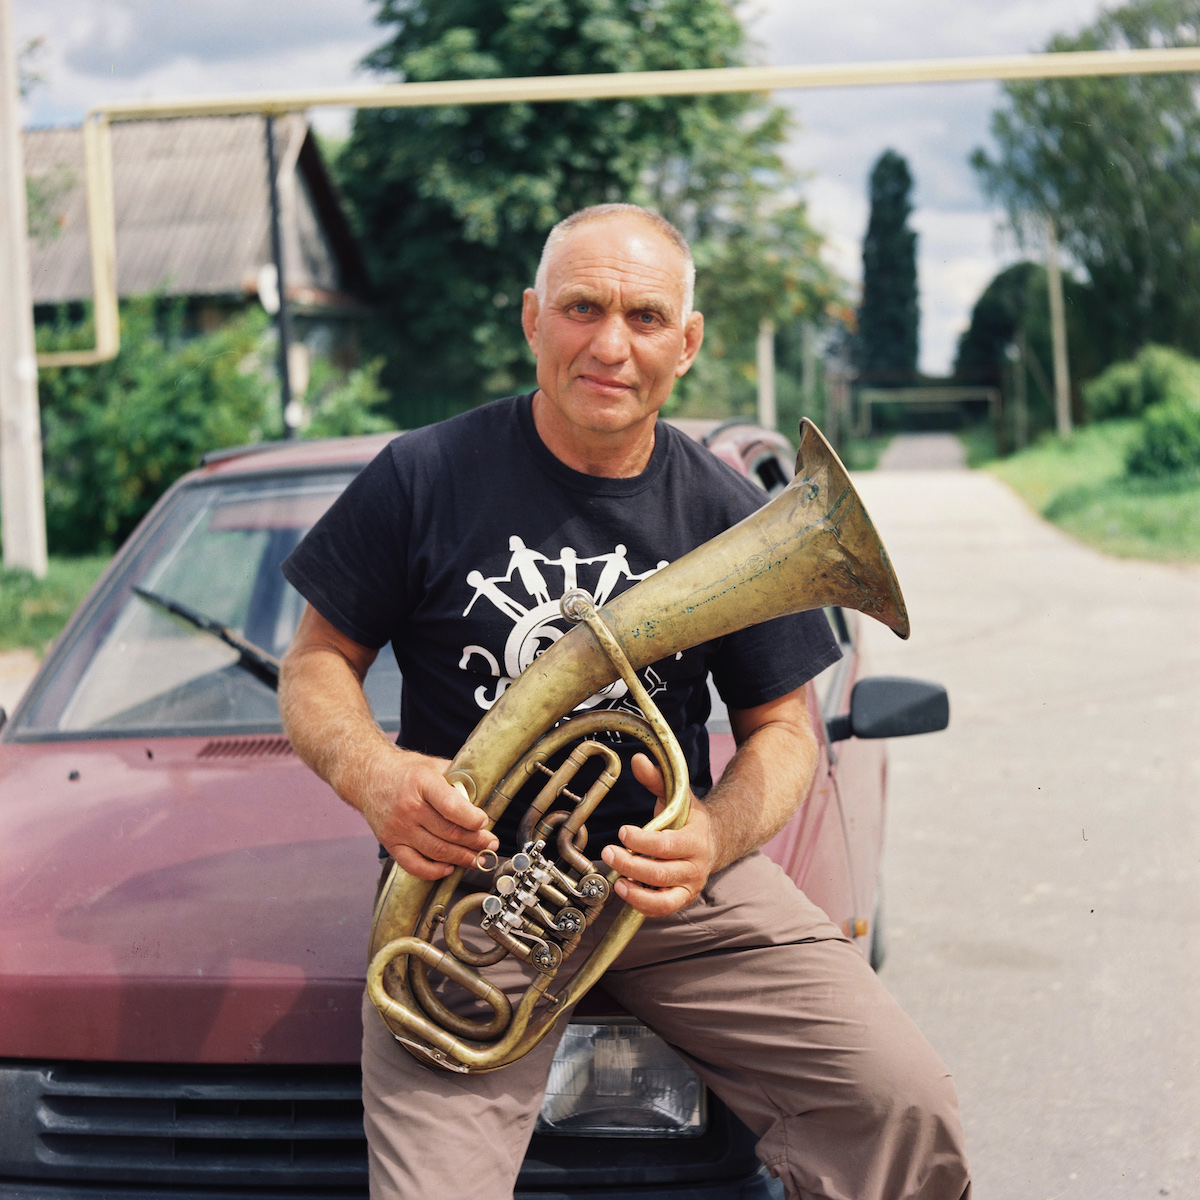 Nikolai Demin, musician, member of a military orchestra, and jazz lover